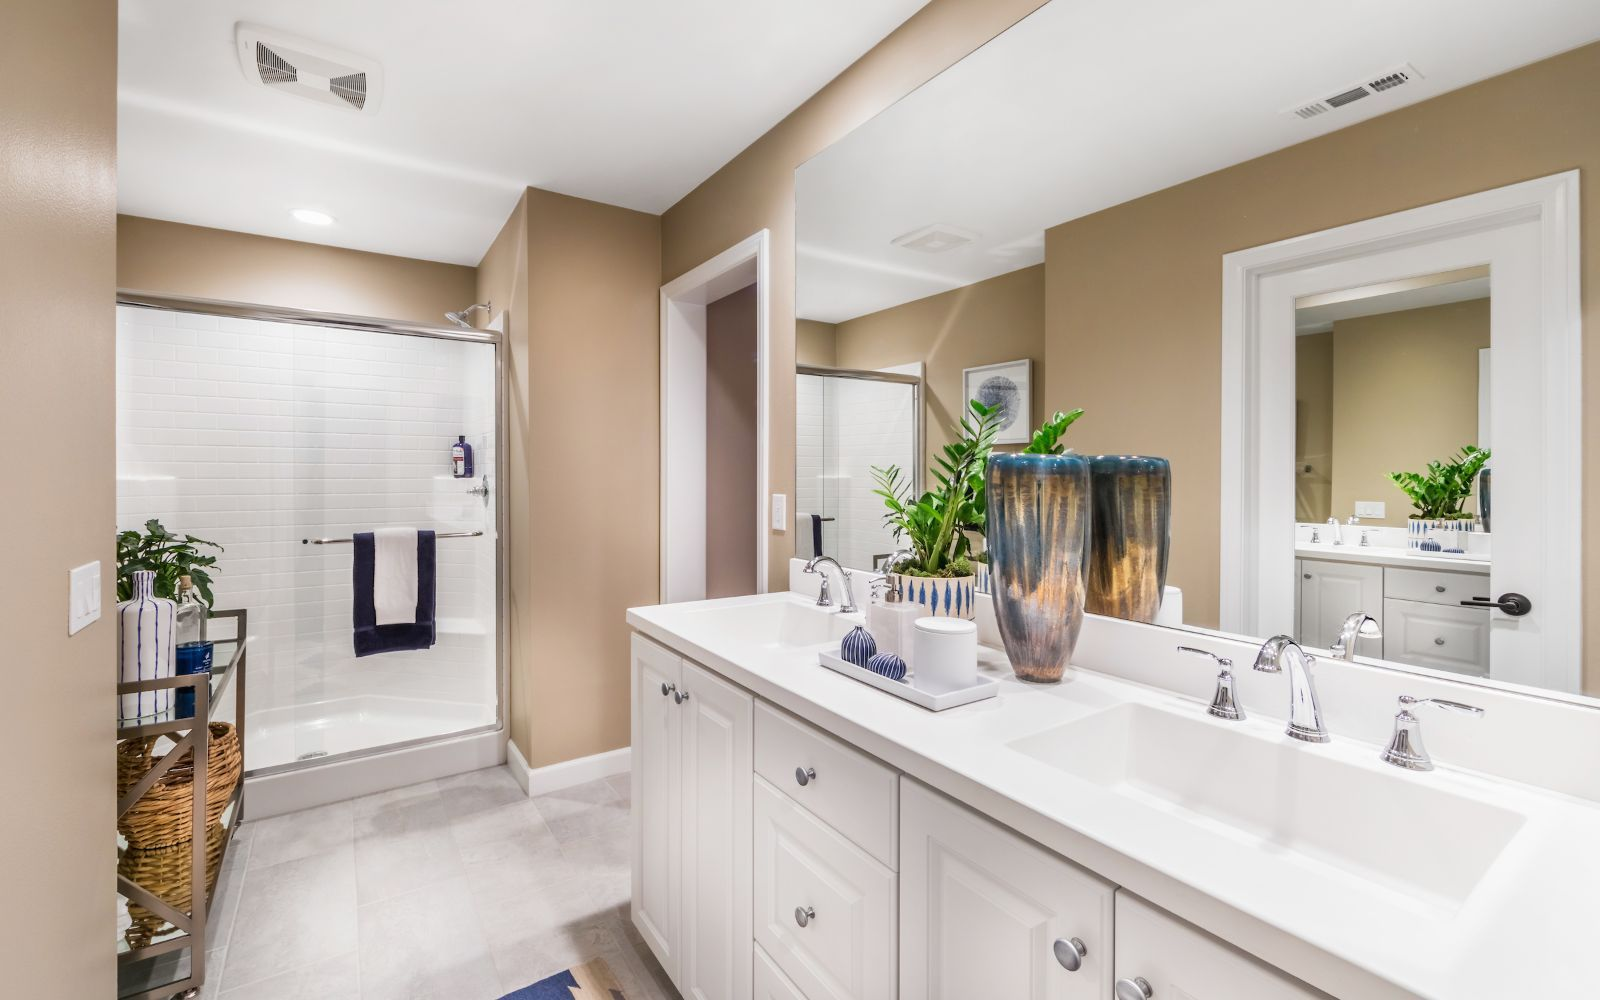 Bathroom featured in the Gardens Plan 2 By Brookfield Residential in Orange County, CA